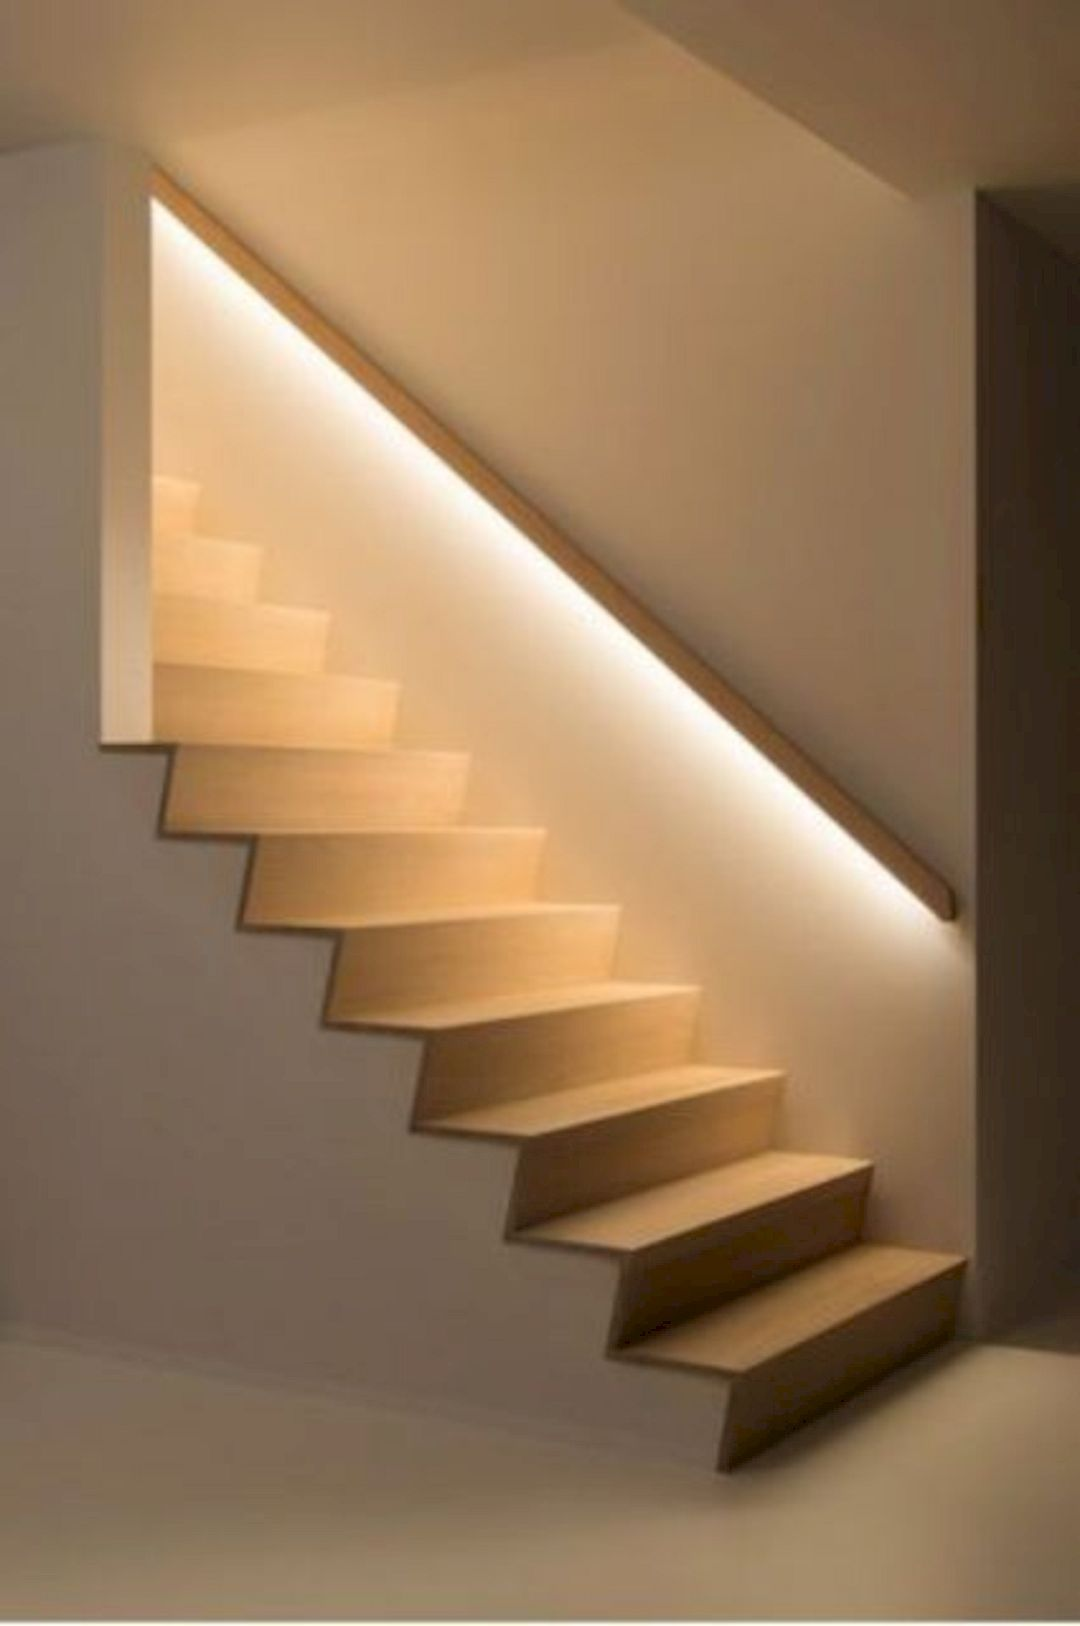 15 Awesome Staircase Lighting Ideas  Https://www.futuristarchitecture.com/35557 Awesome Staircase Lighting Ideas. Html